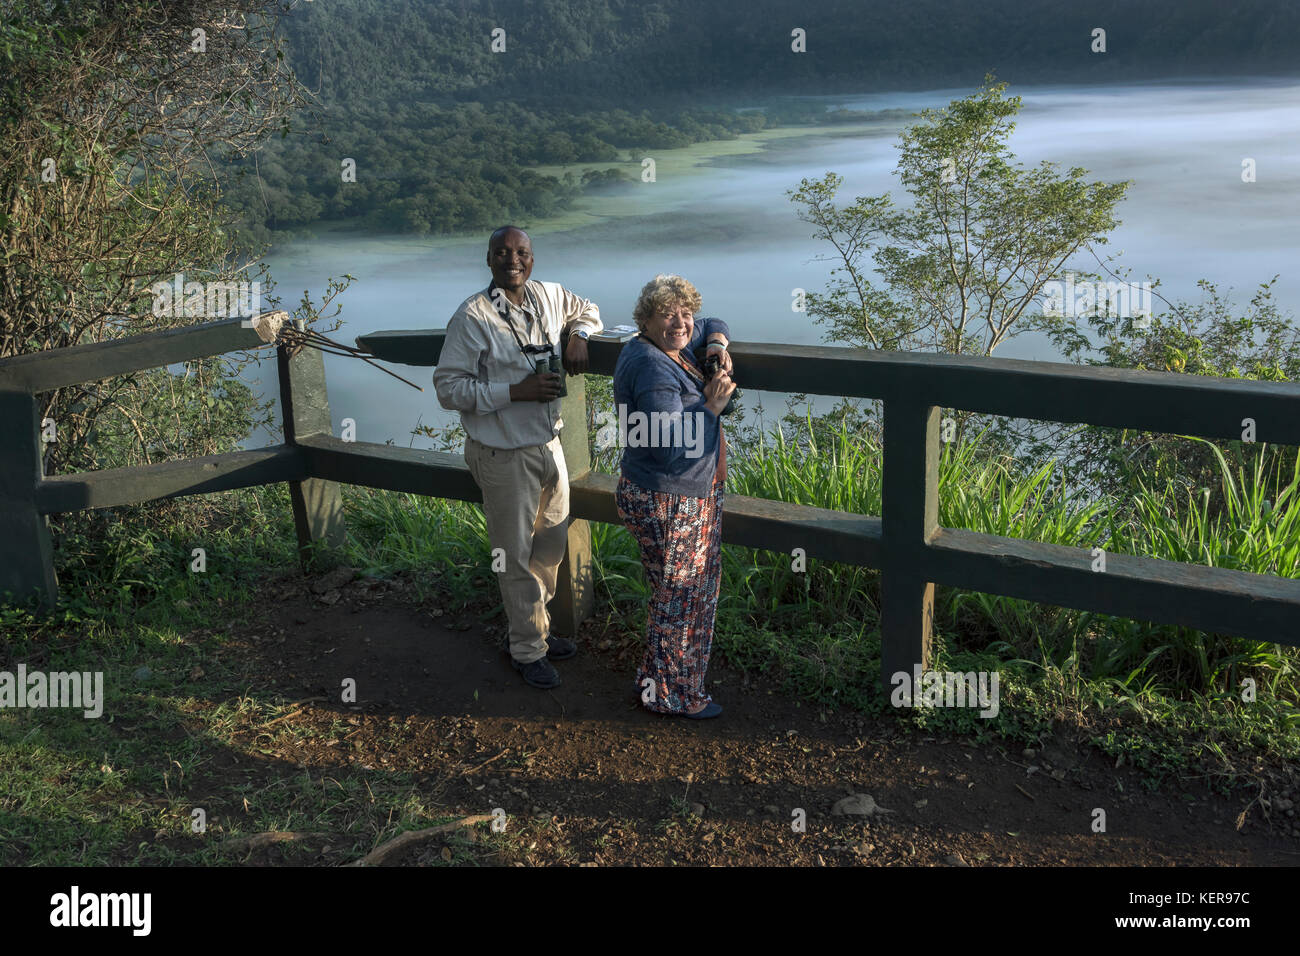 Smiling guide and client, Ngurdoto Crater, Arusha NP, Tanzania - Stock Image